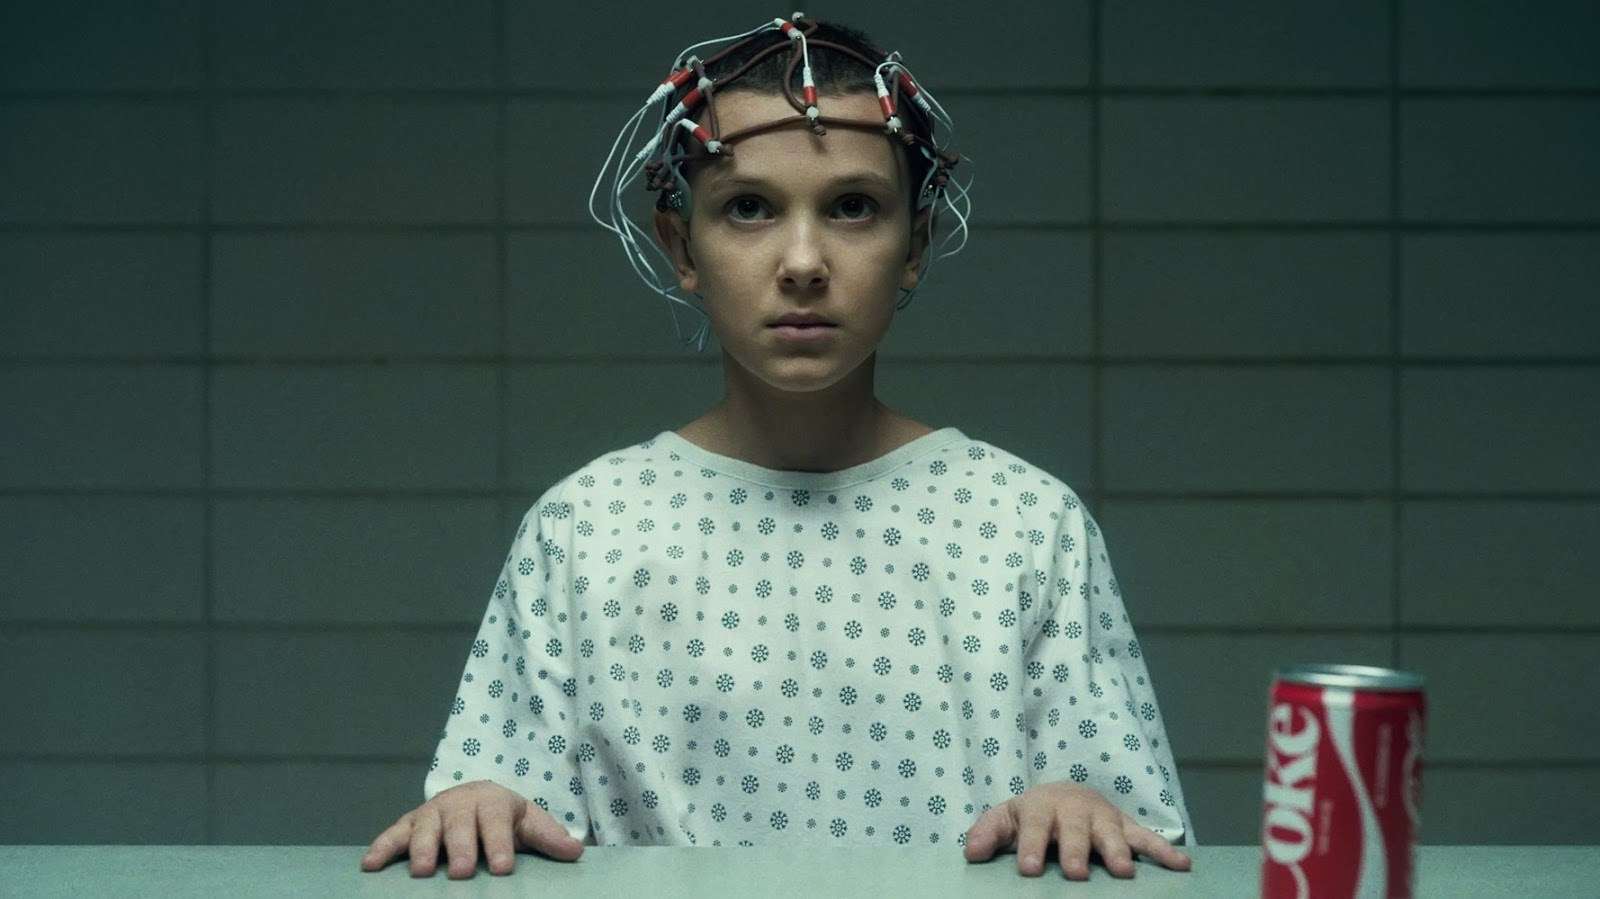 Eleven, interpretada por Millie Bobby Brown en 'Stranger Things'